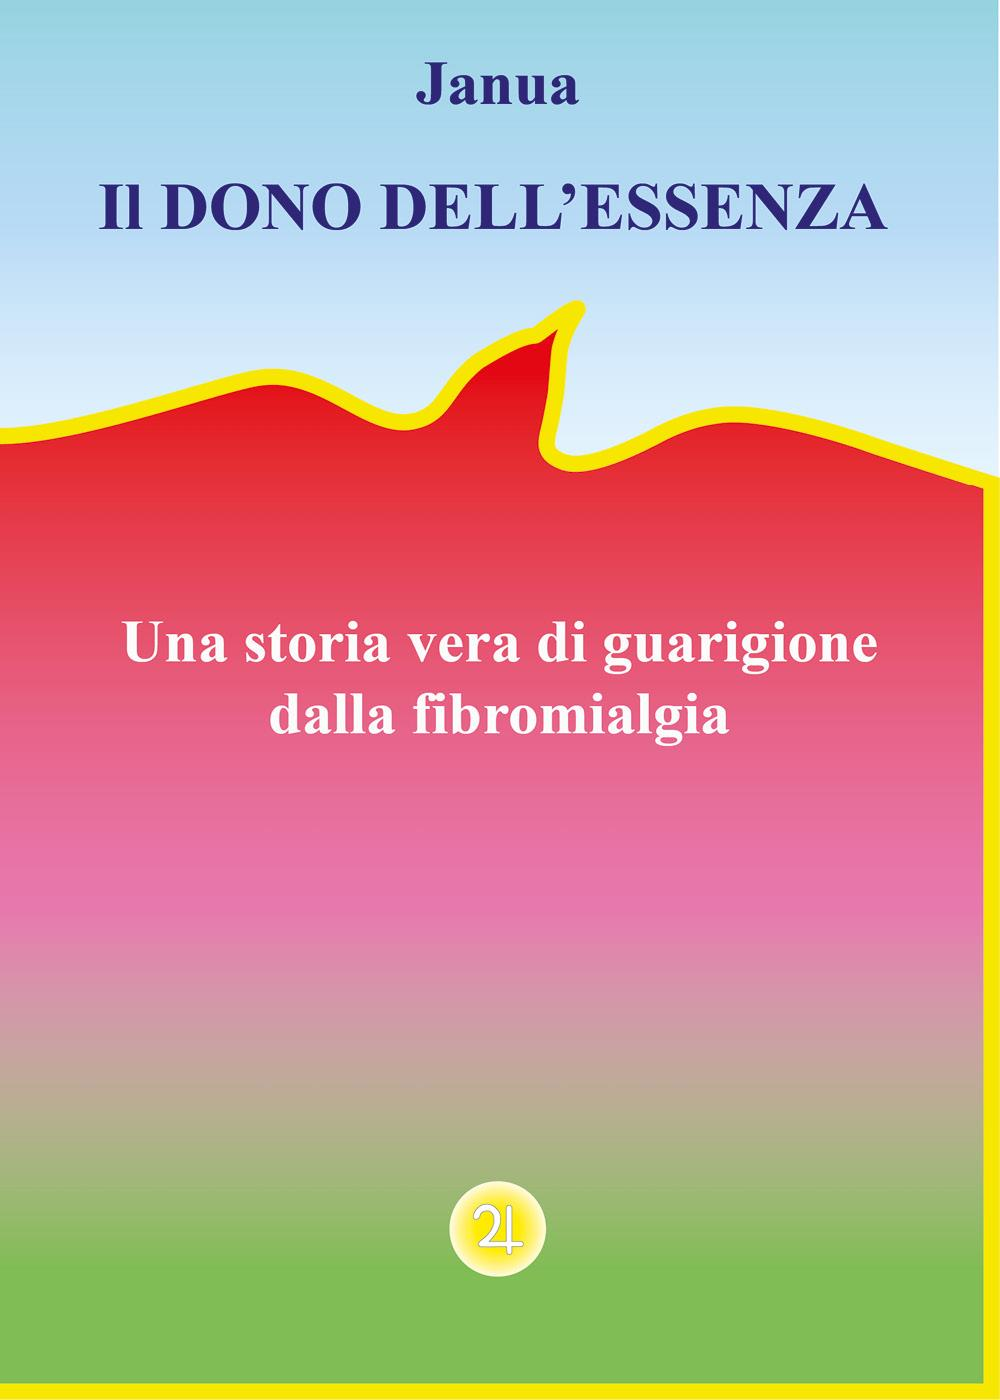 Il dono dell'essenza